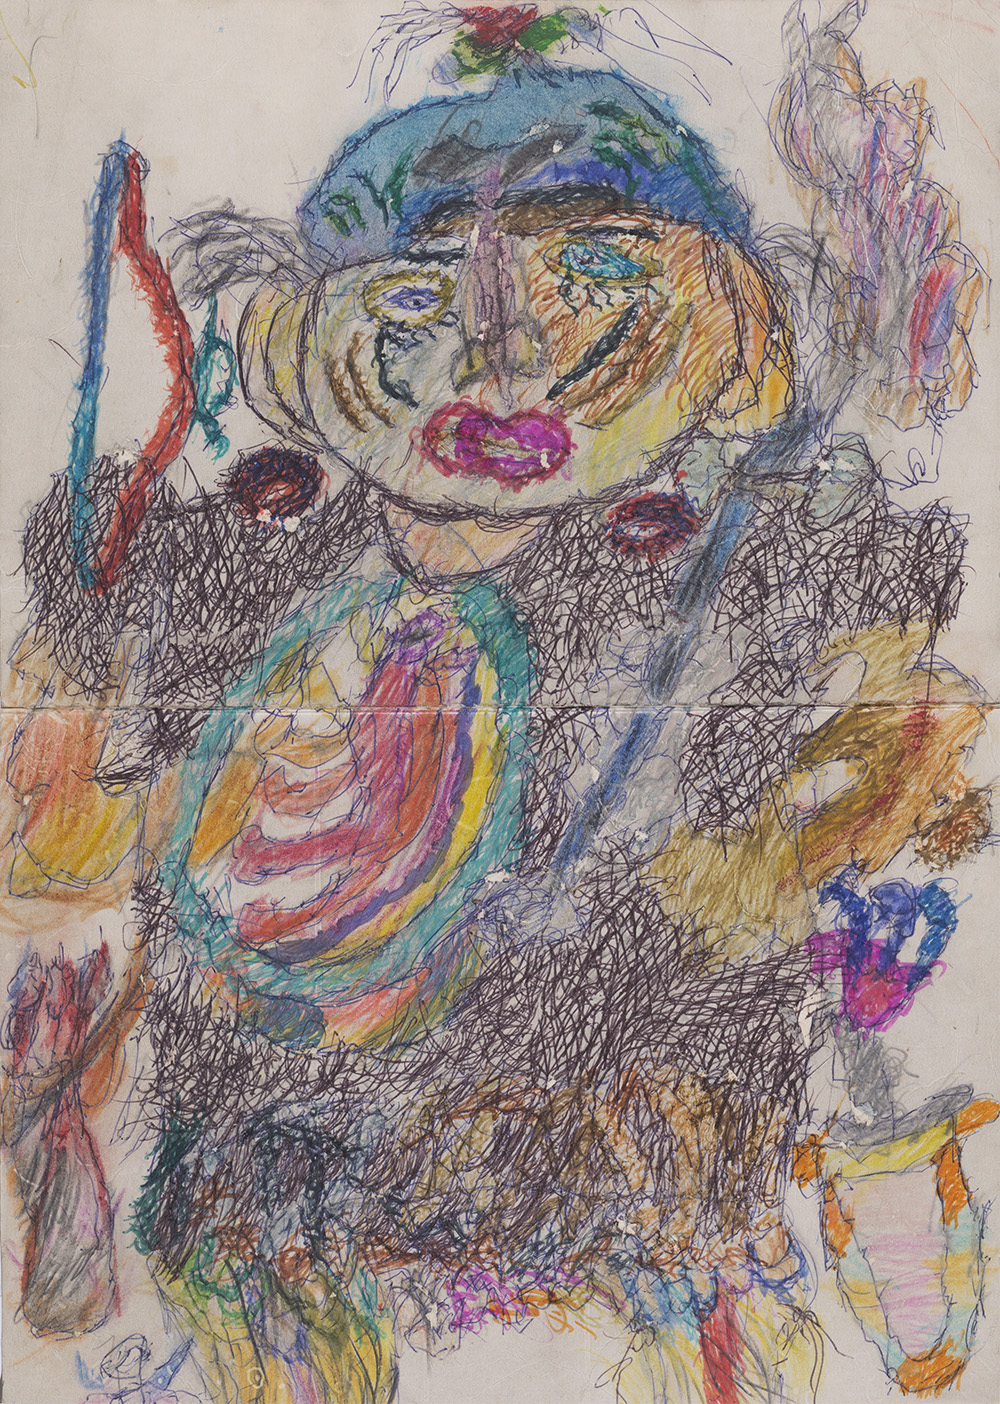 Ilya Natarevich    Spartacus  , 2015 Ink, marker, crayon on paper 18.5 x 13.25 inches 47 x 33.7 cm INa 3